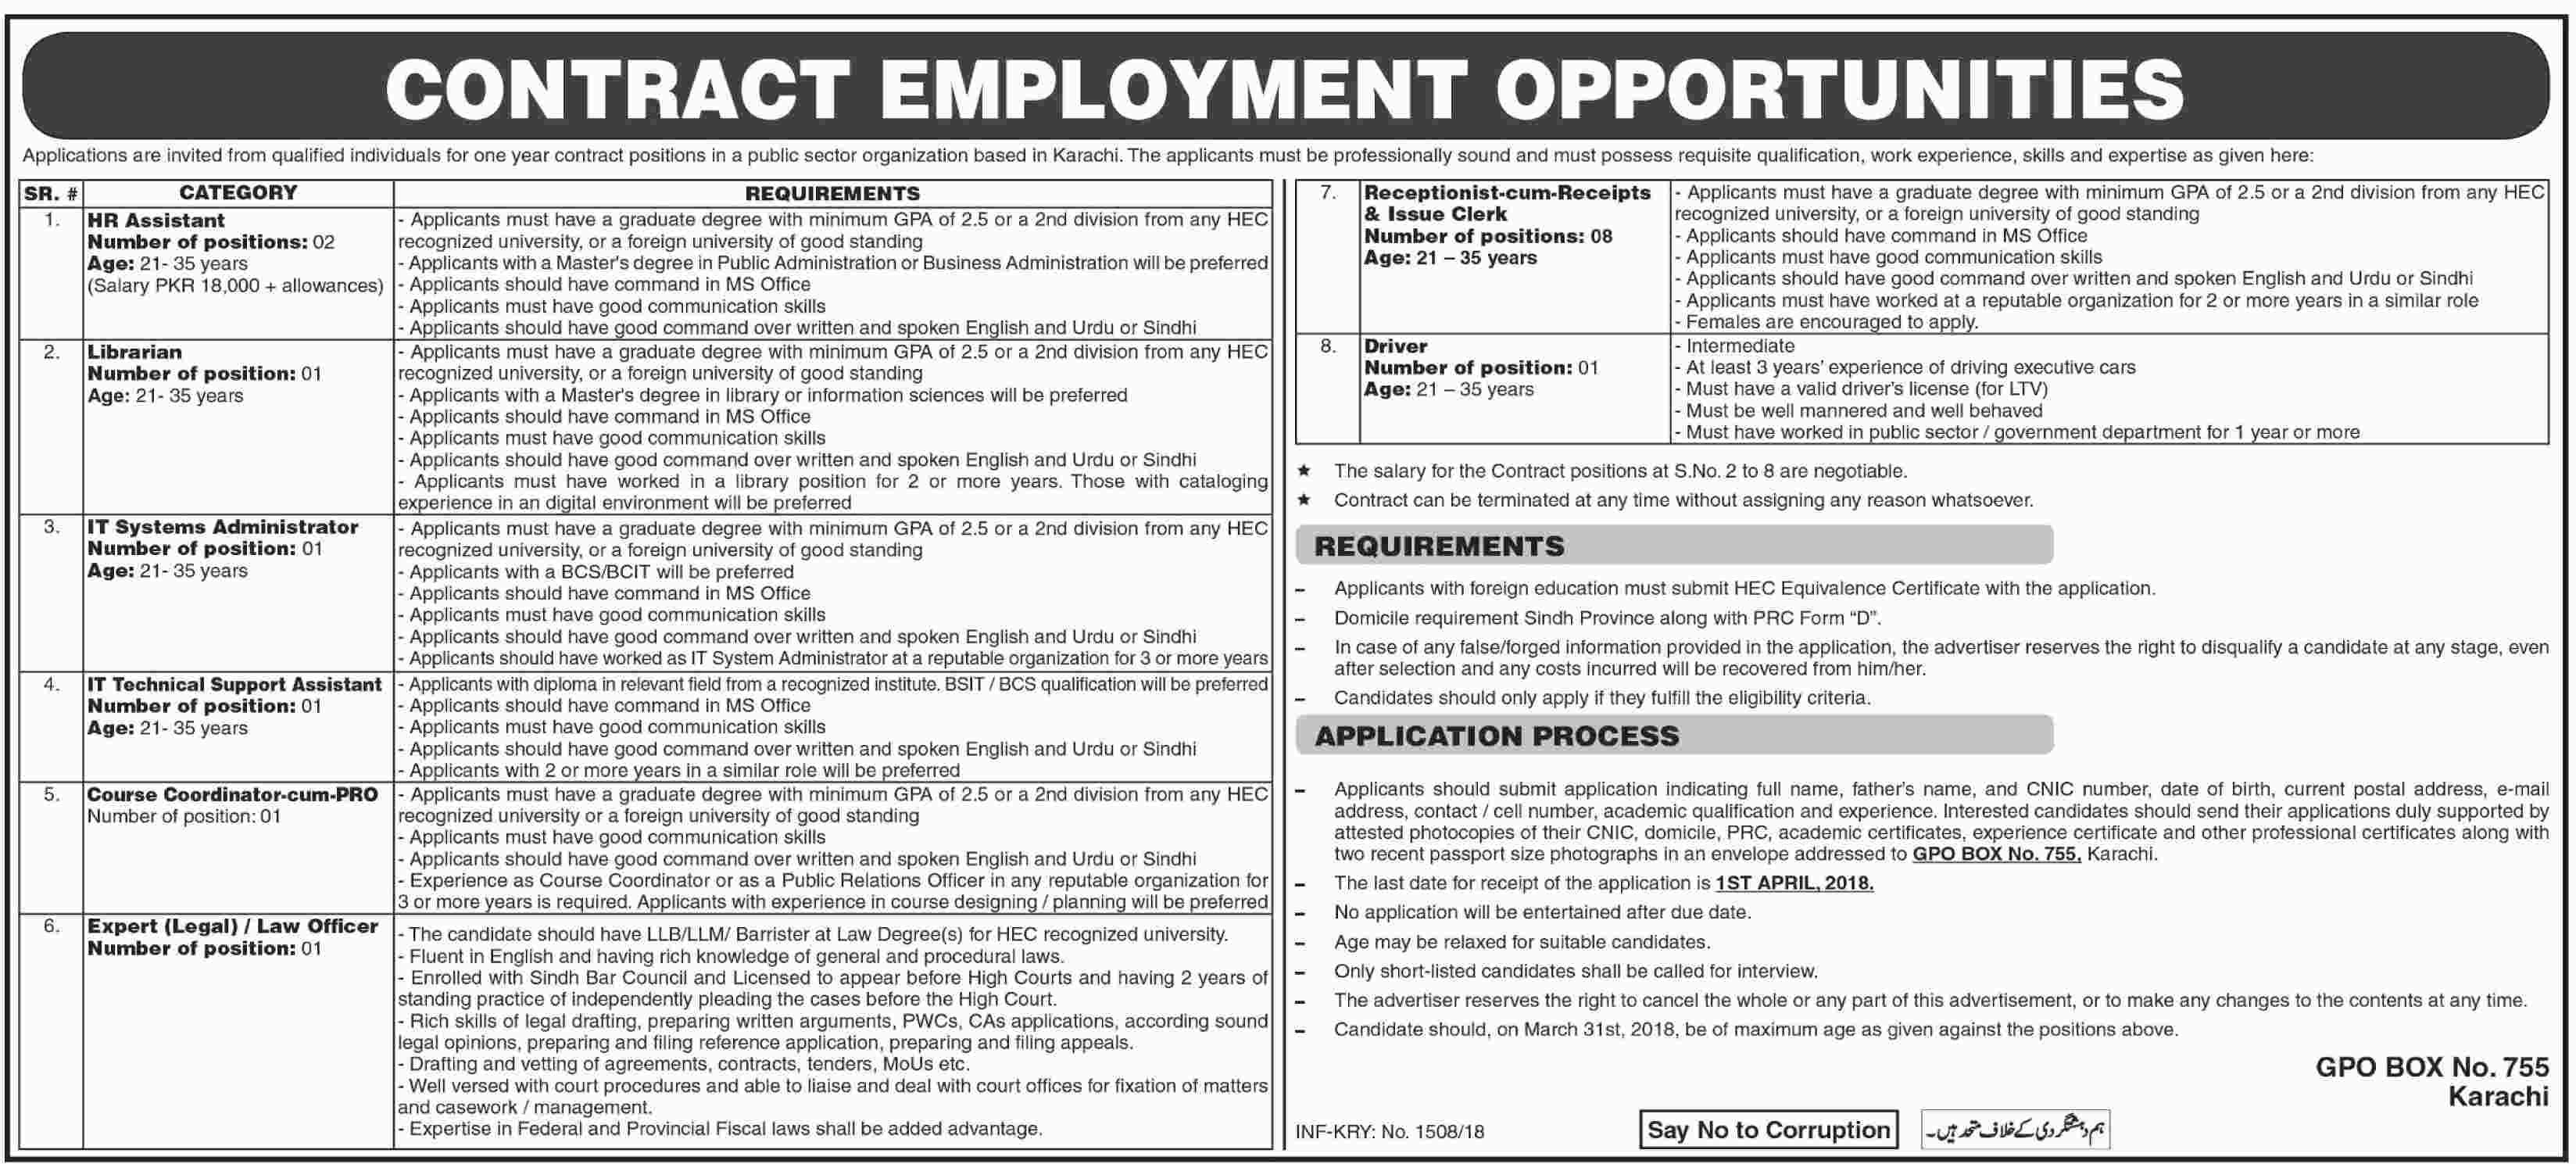 Jobs in a Public Sector Organization 18 March 2018